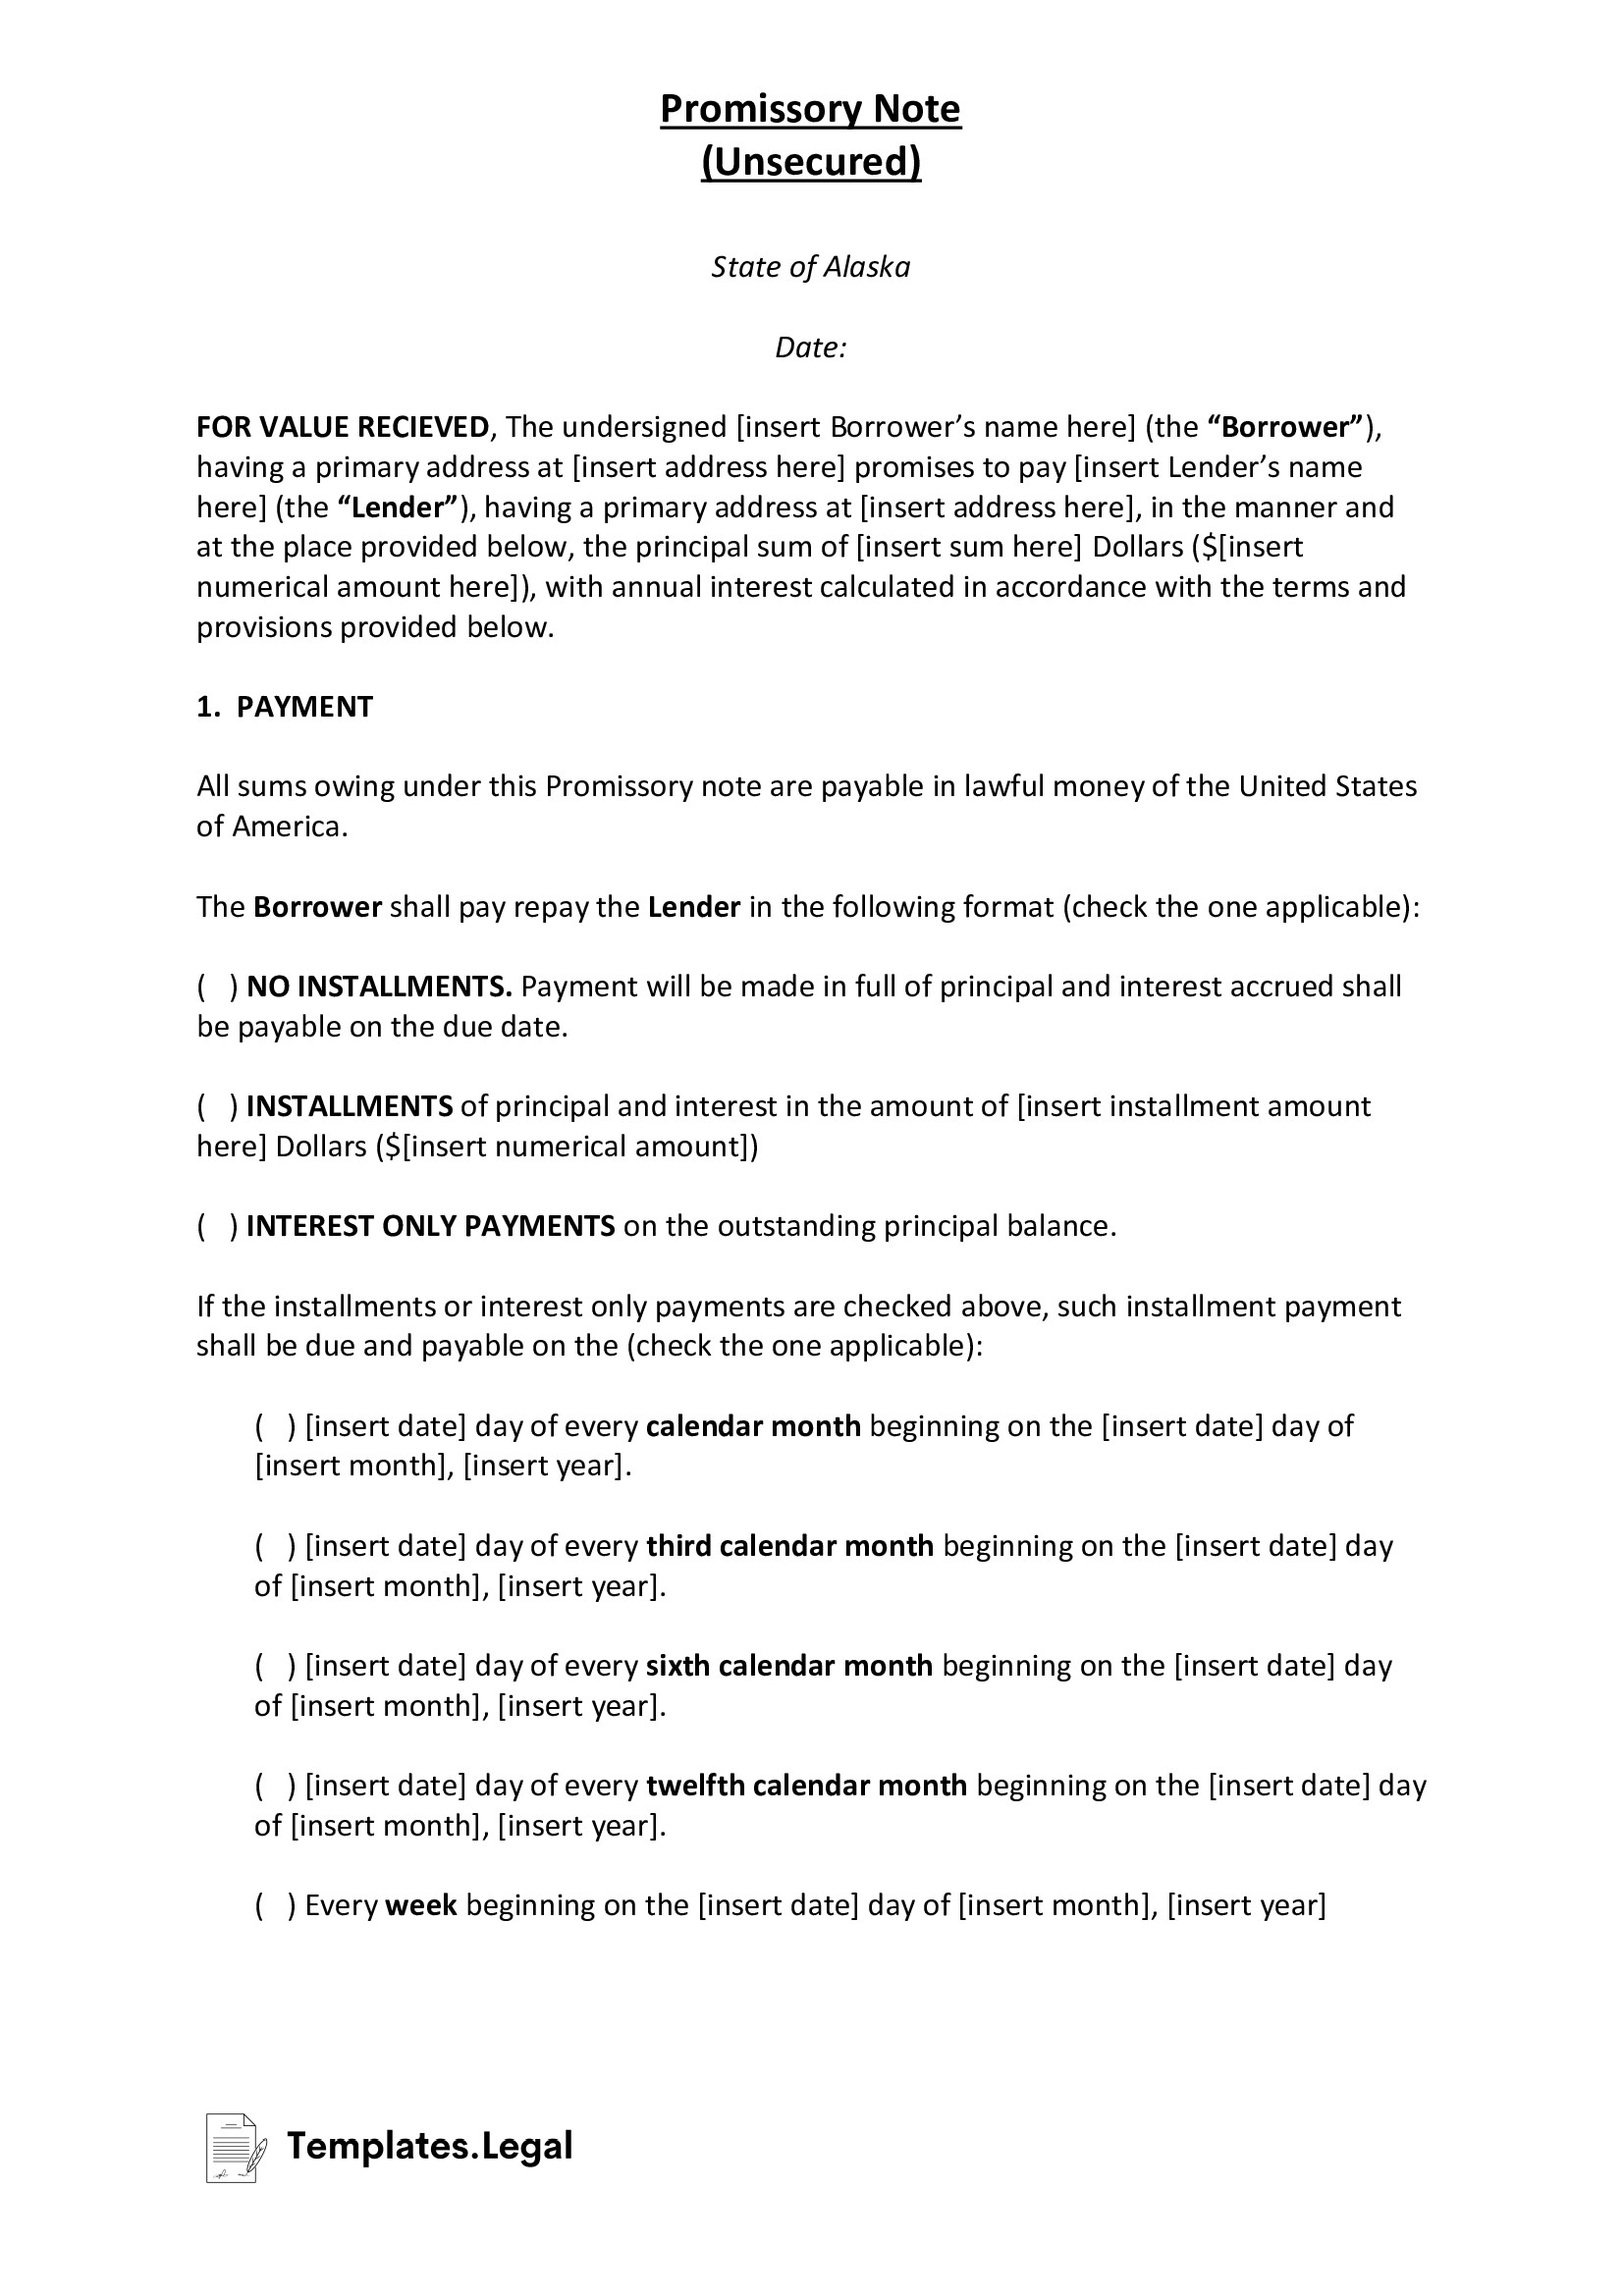 Alaska Unsecured Promissory Note - Templates.Legal